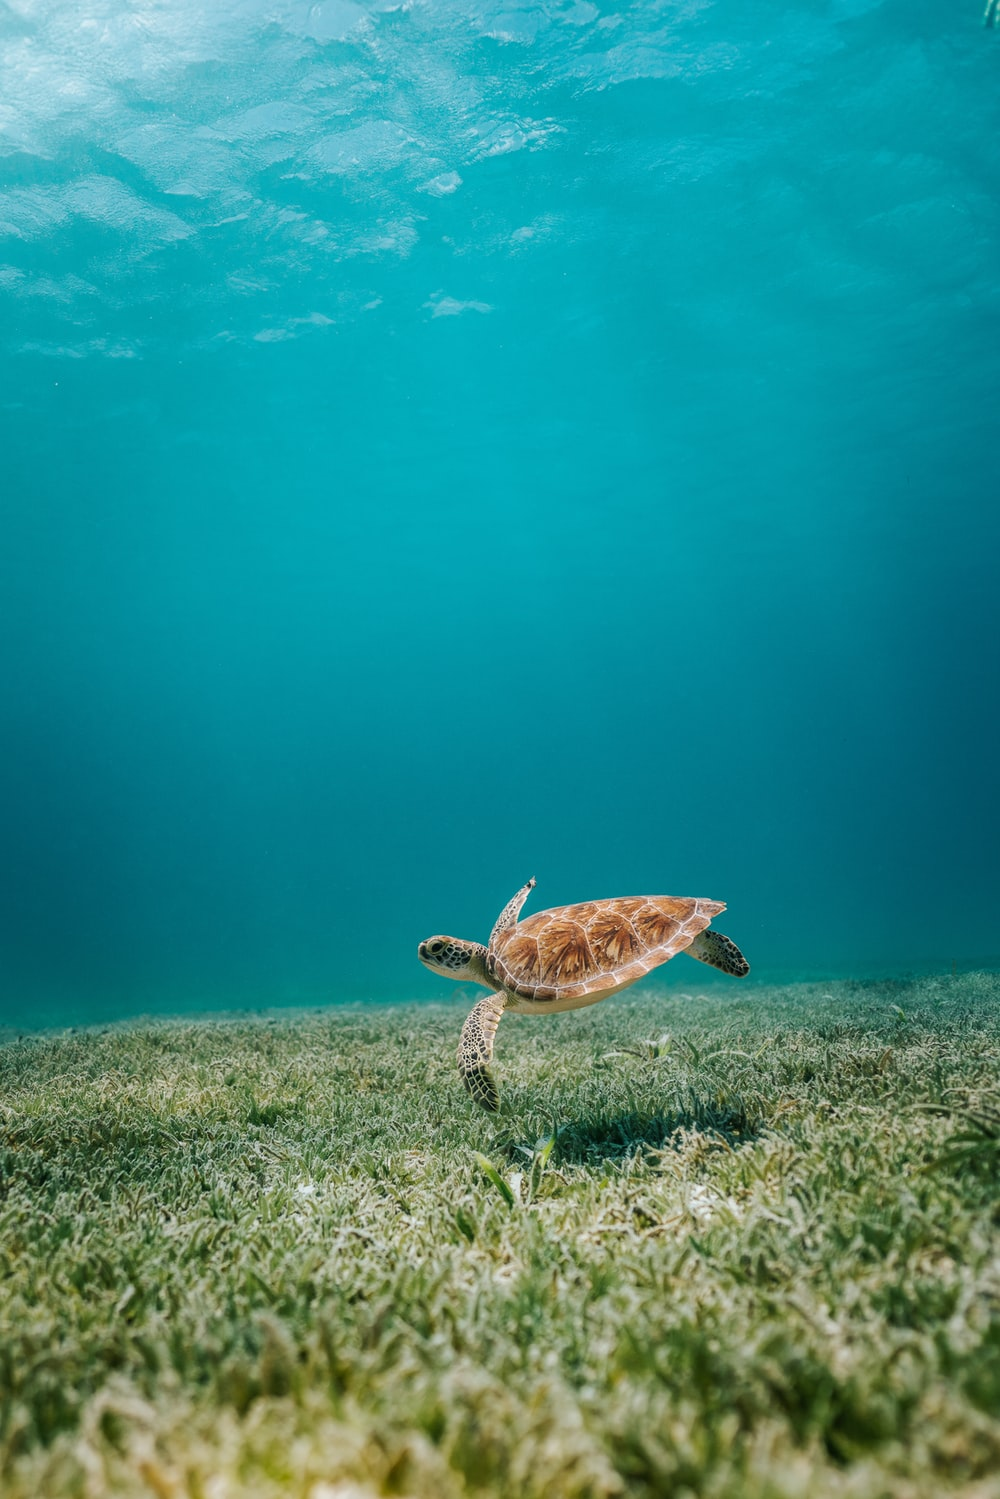 brown turtle in body of water